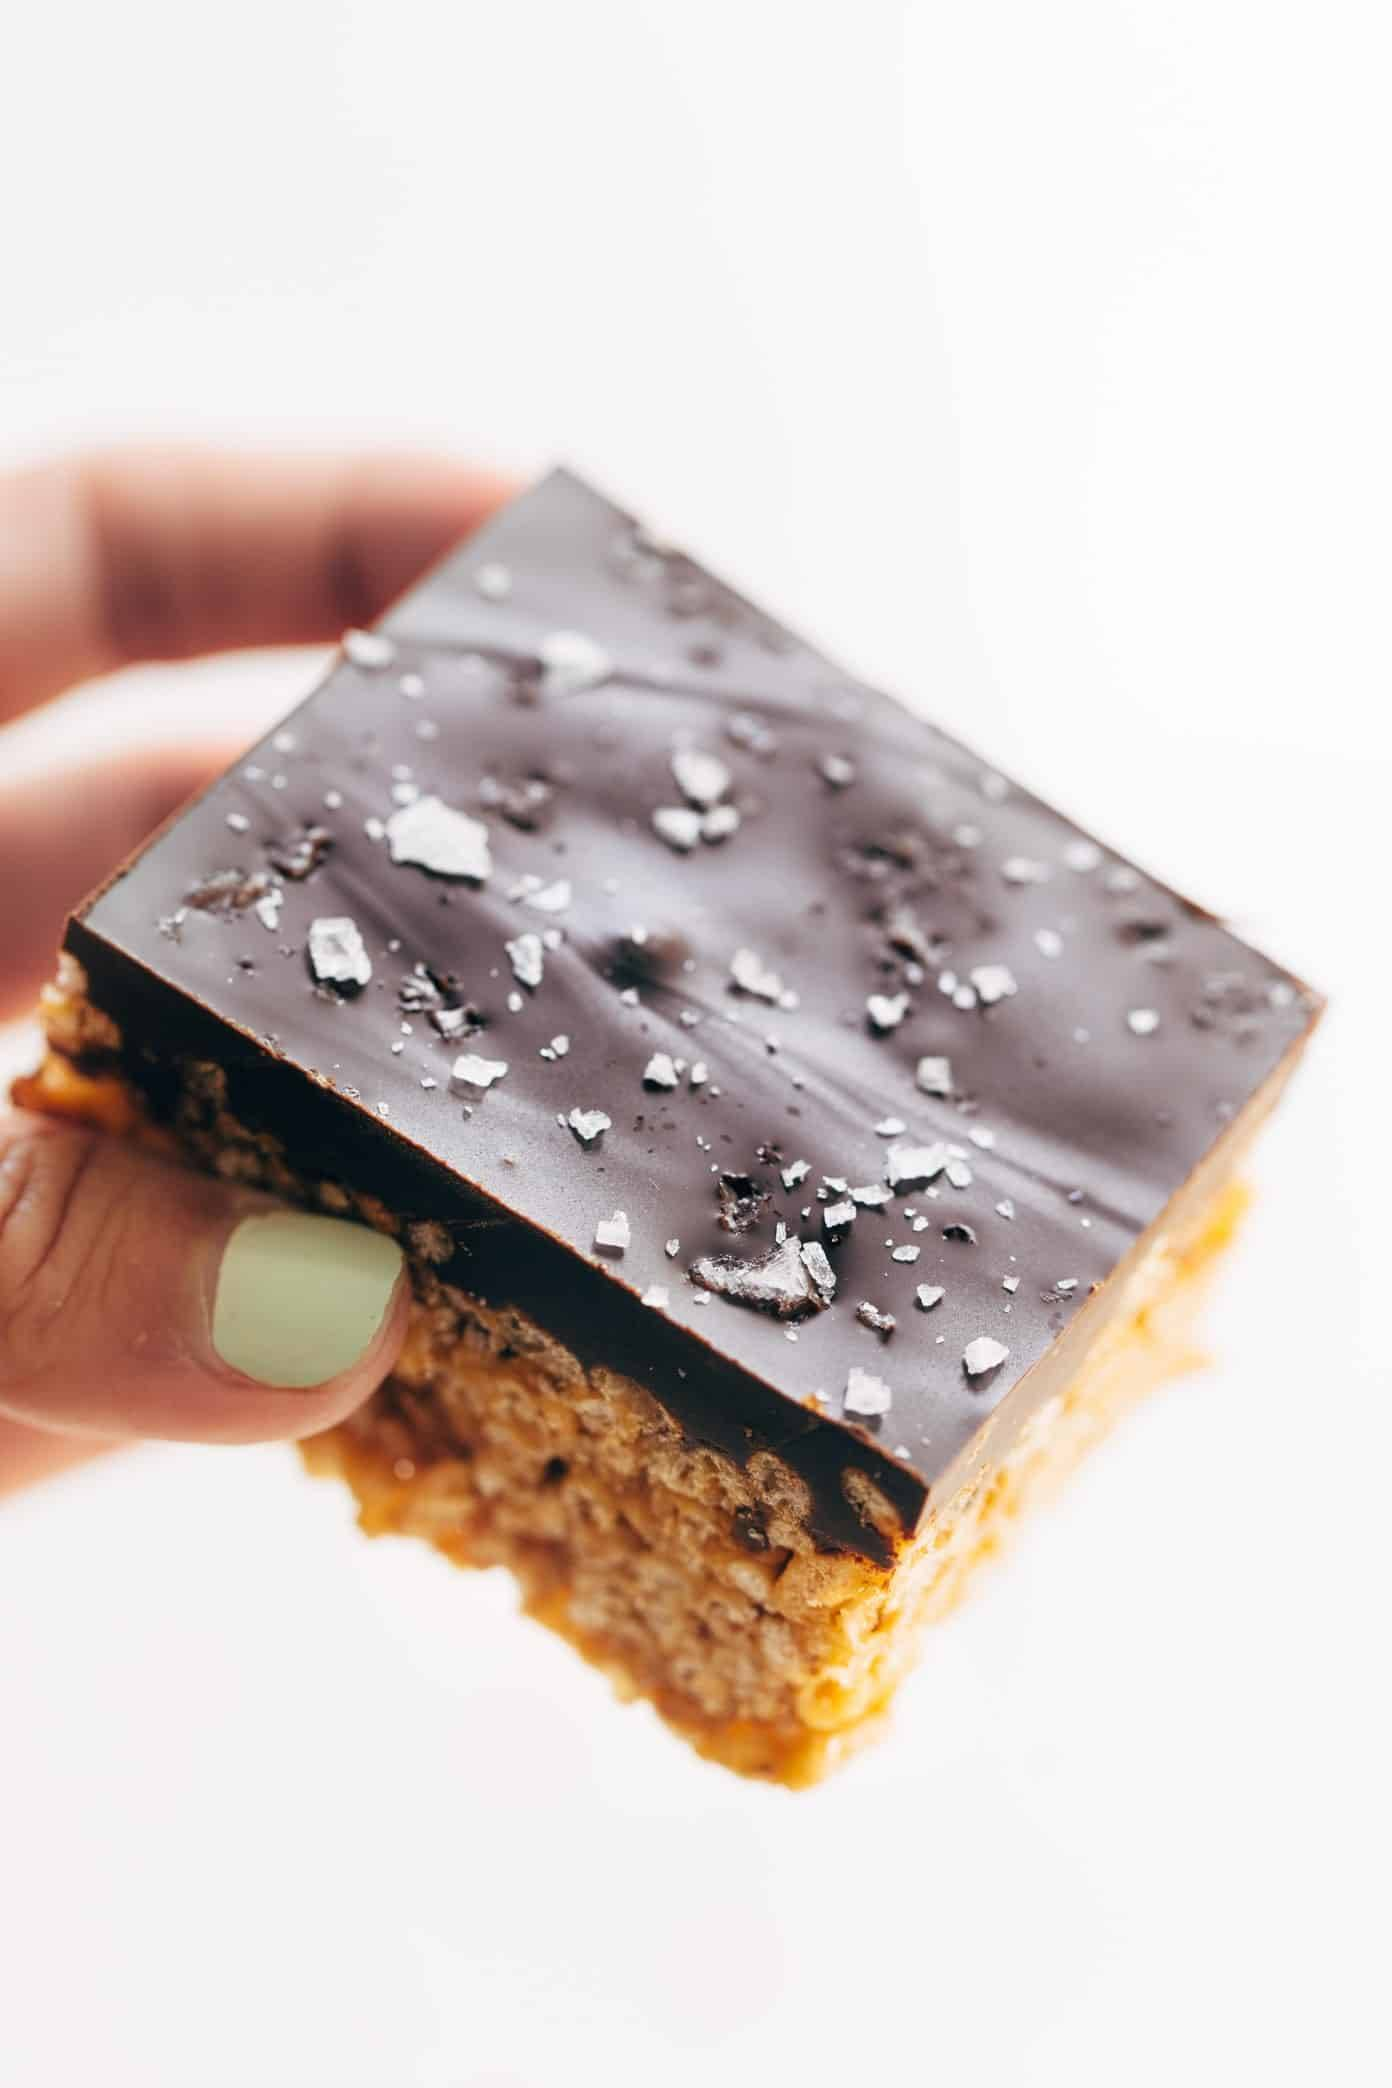 Chocolate-covered peanut butter rice krispie bar.